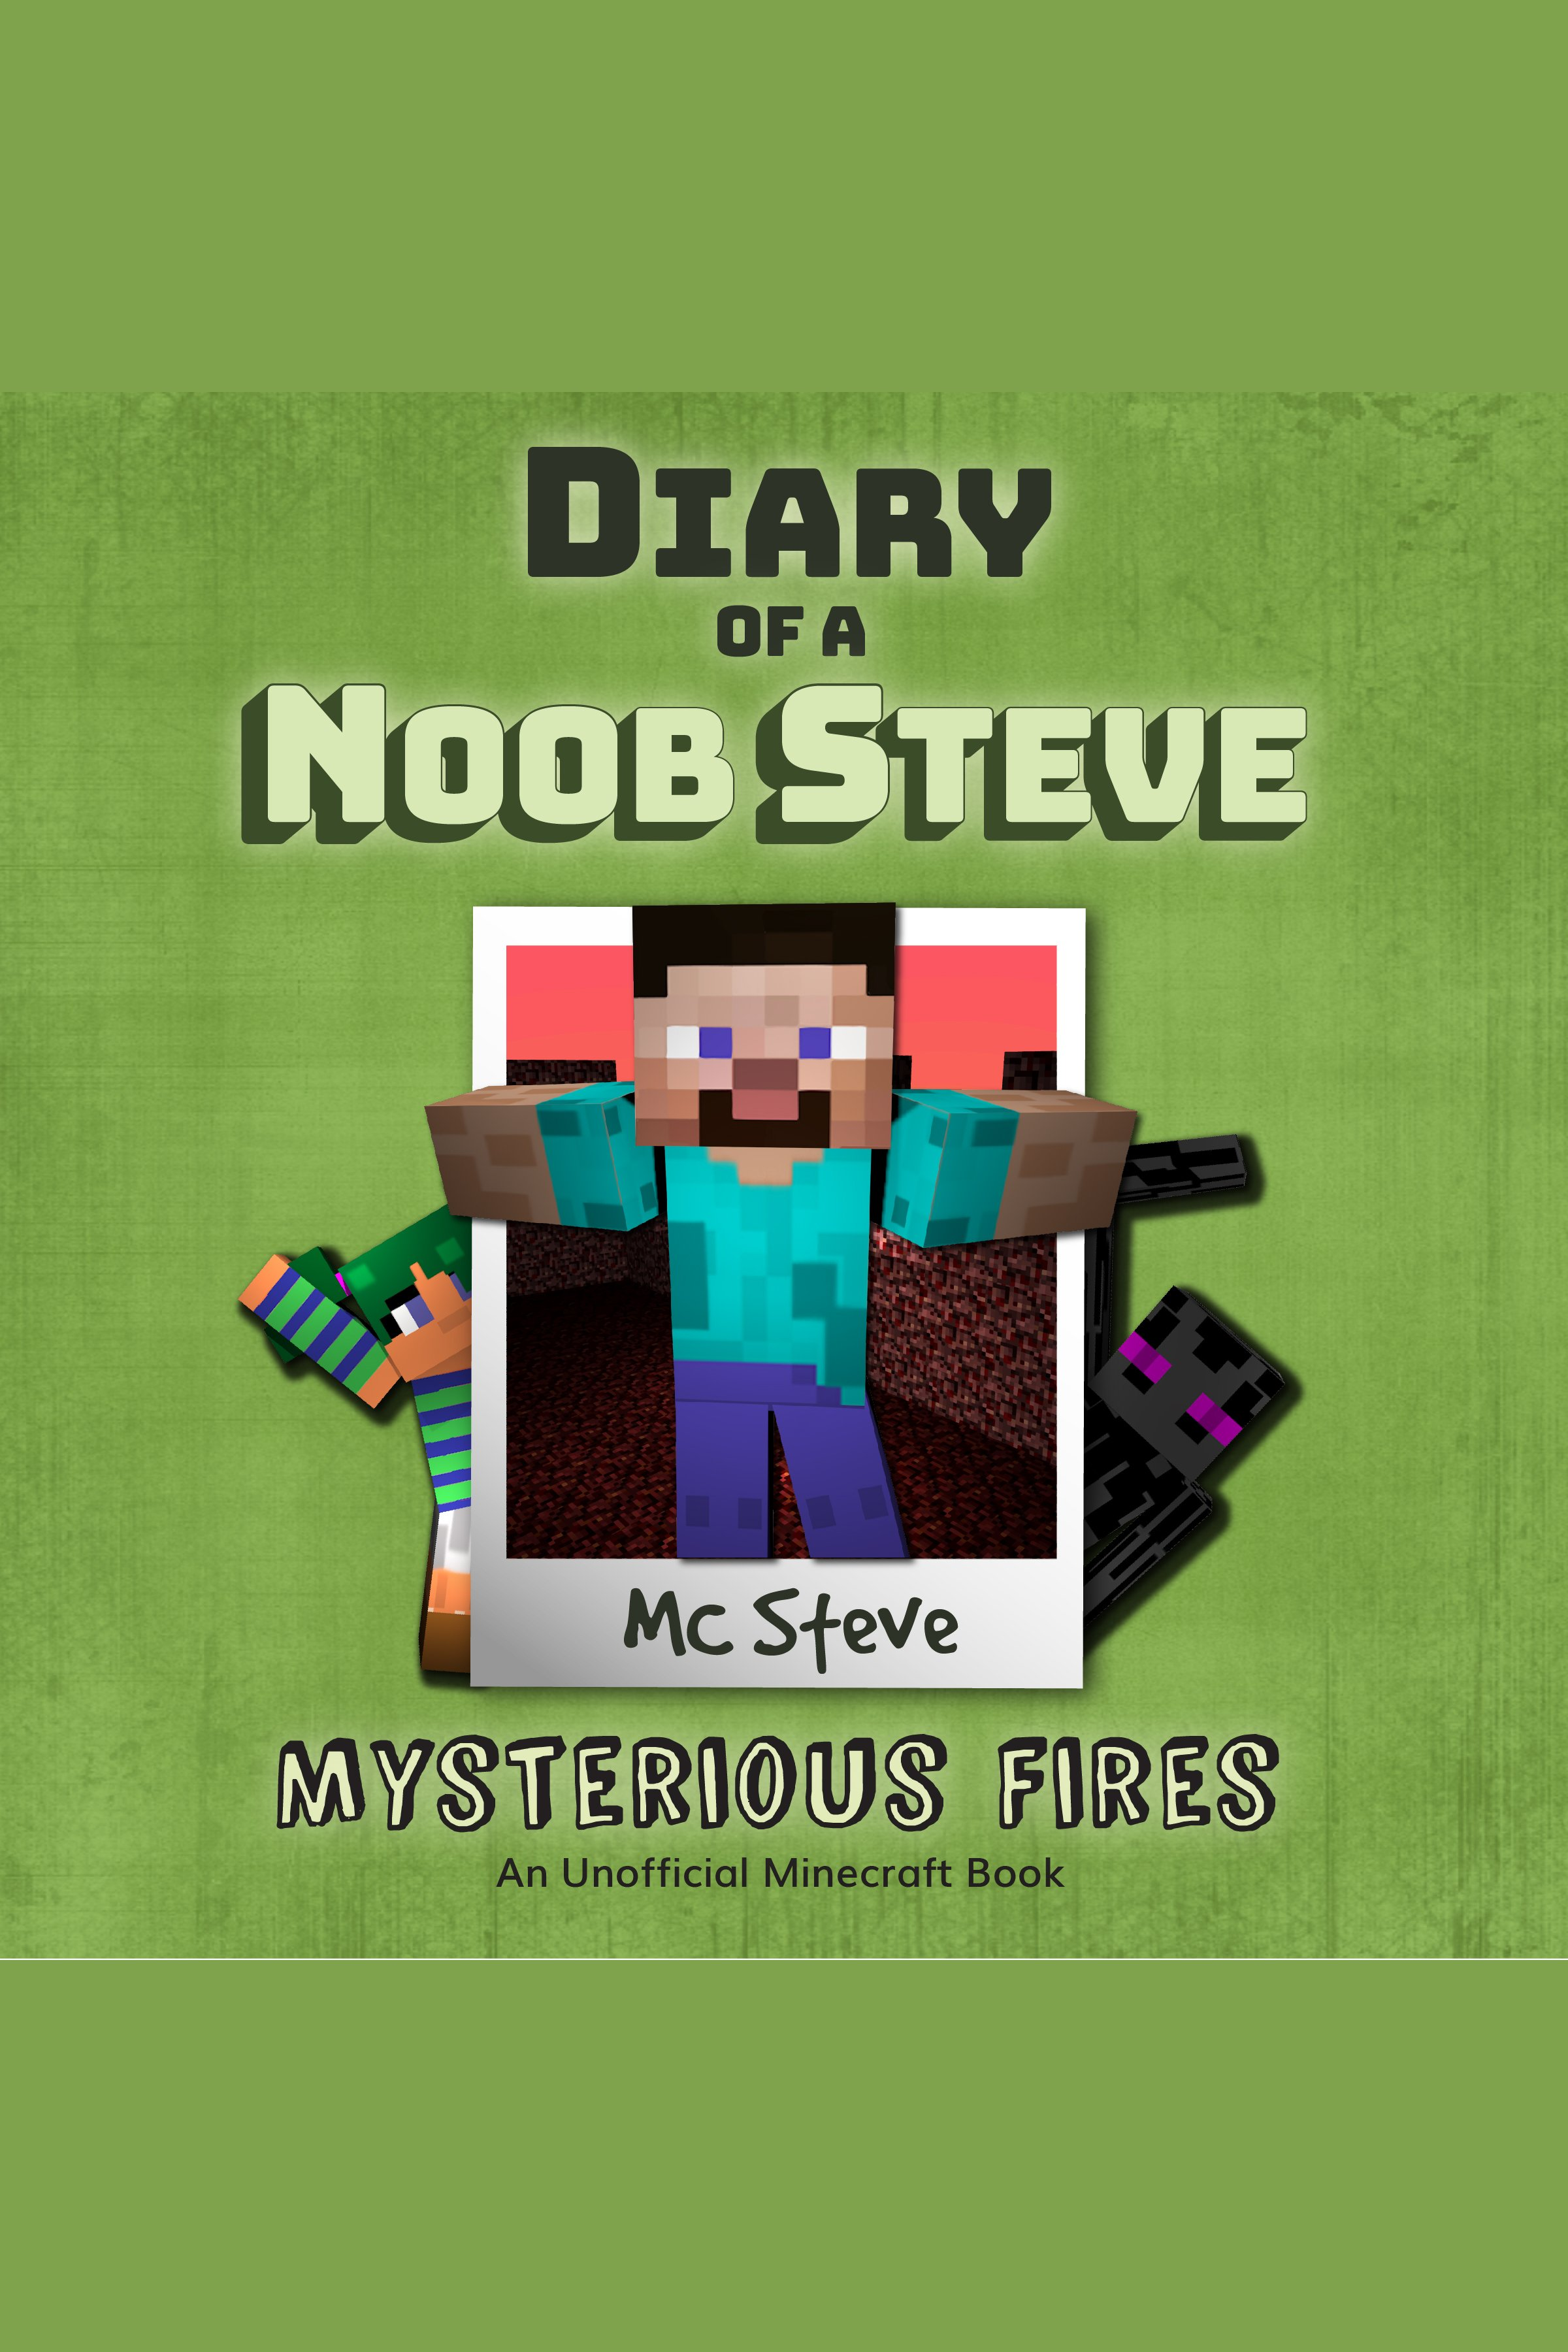 Diary Of A Minecraft Noob Steve Book 1: Mysterious Fires (An Unofficial Minecraft Book)